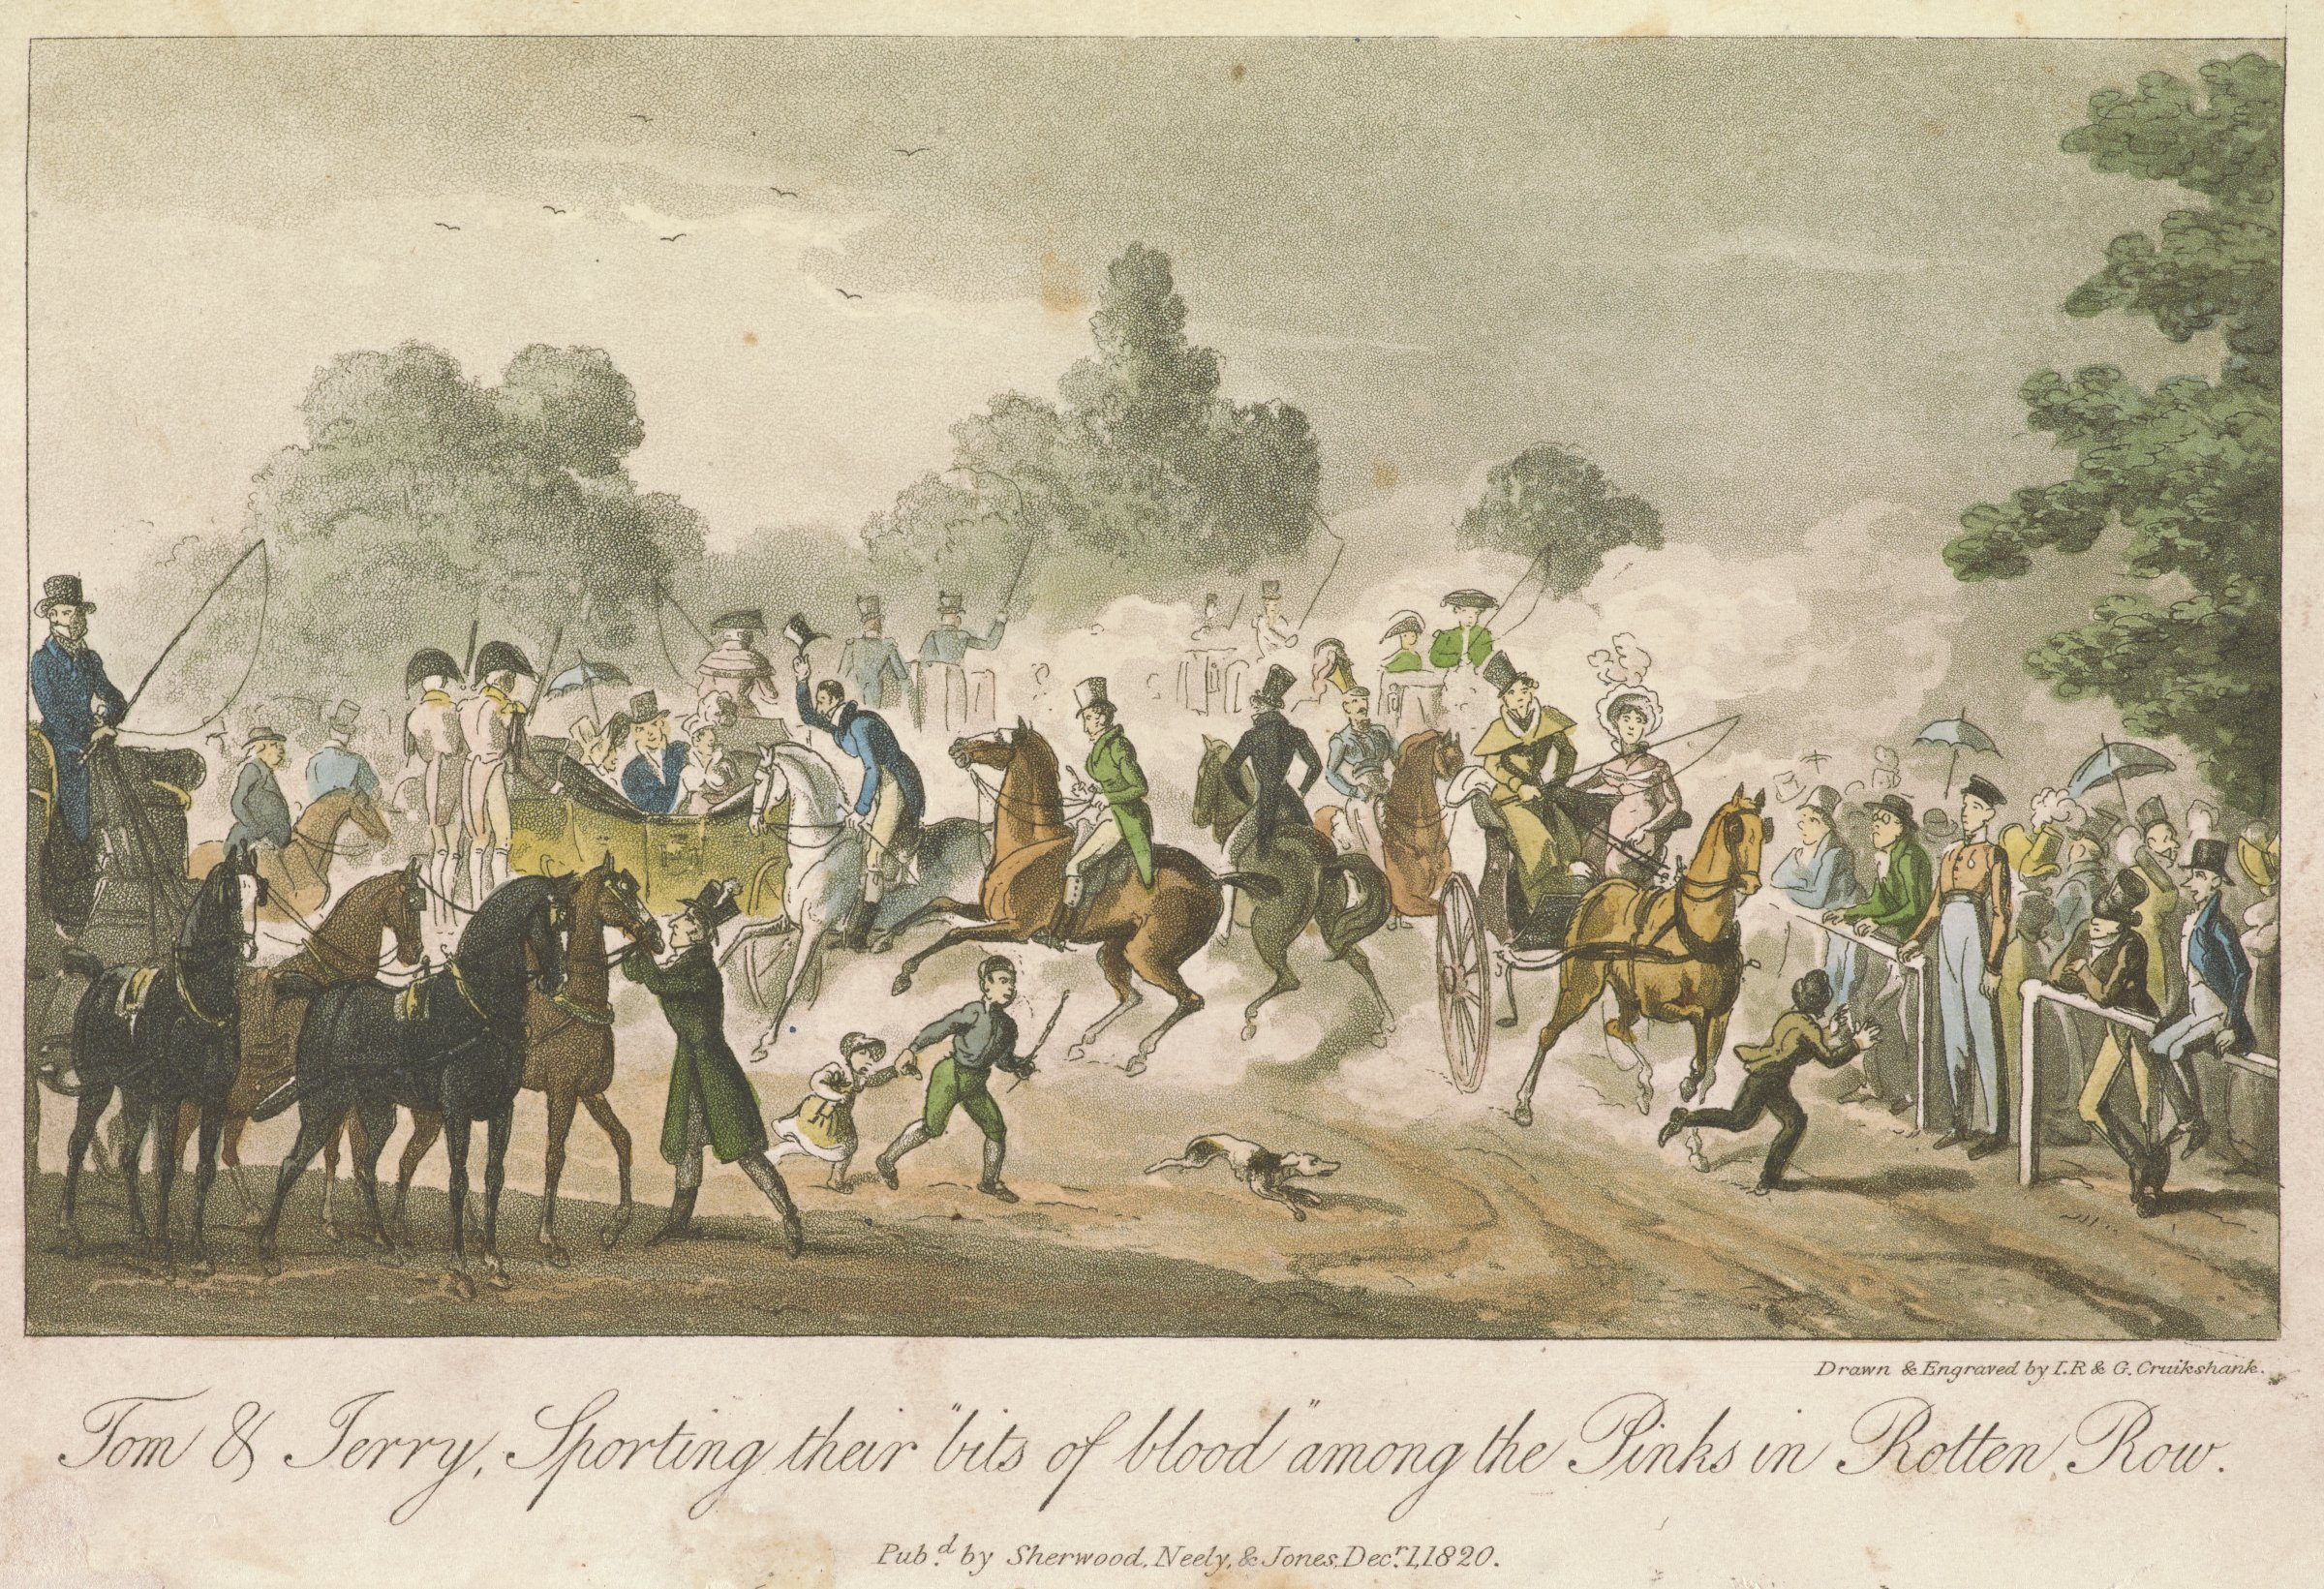 Chaotic scene of men on horseback and carriages with spectators on the right.